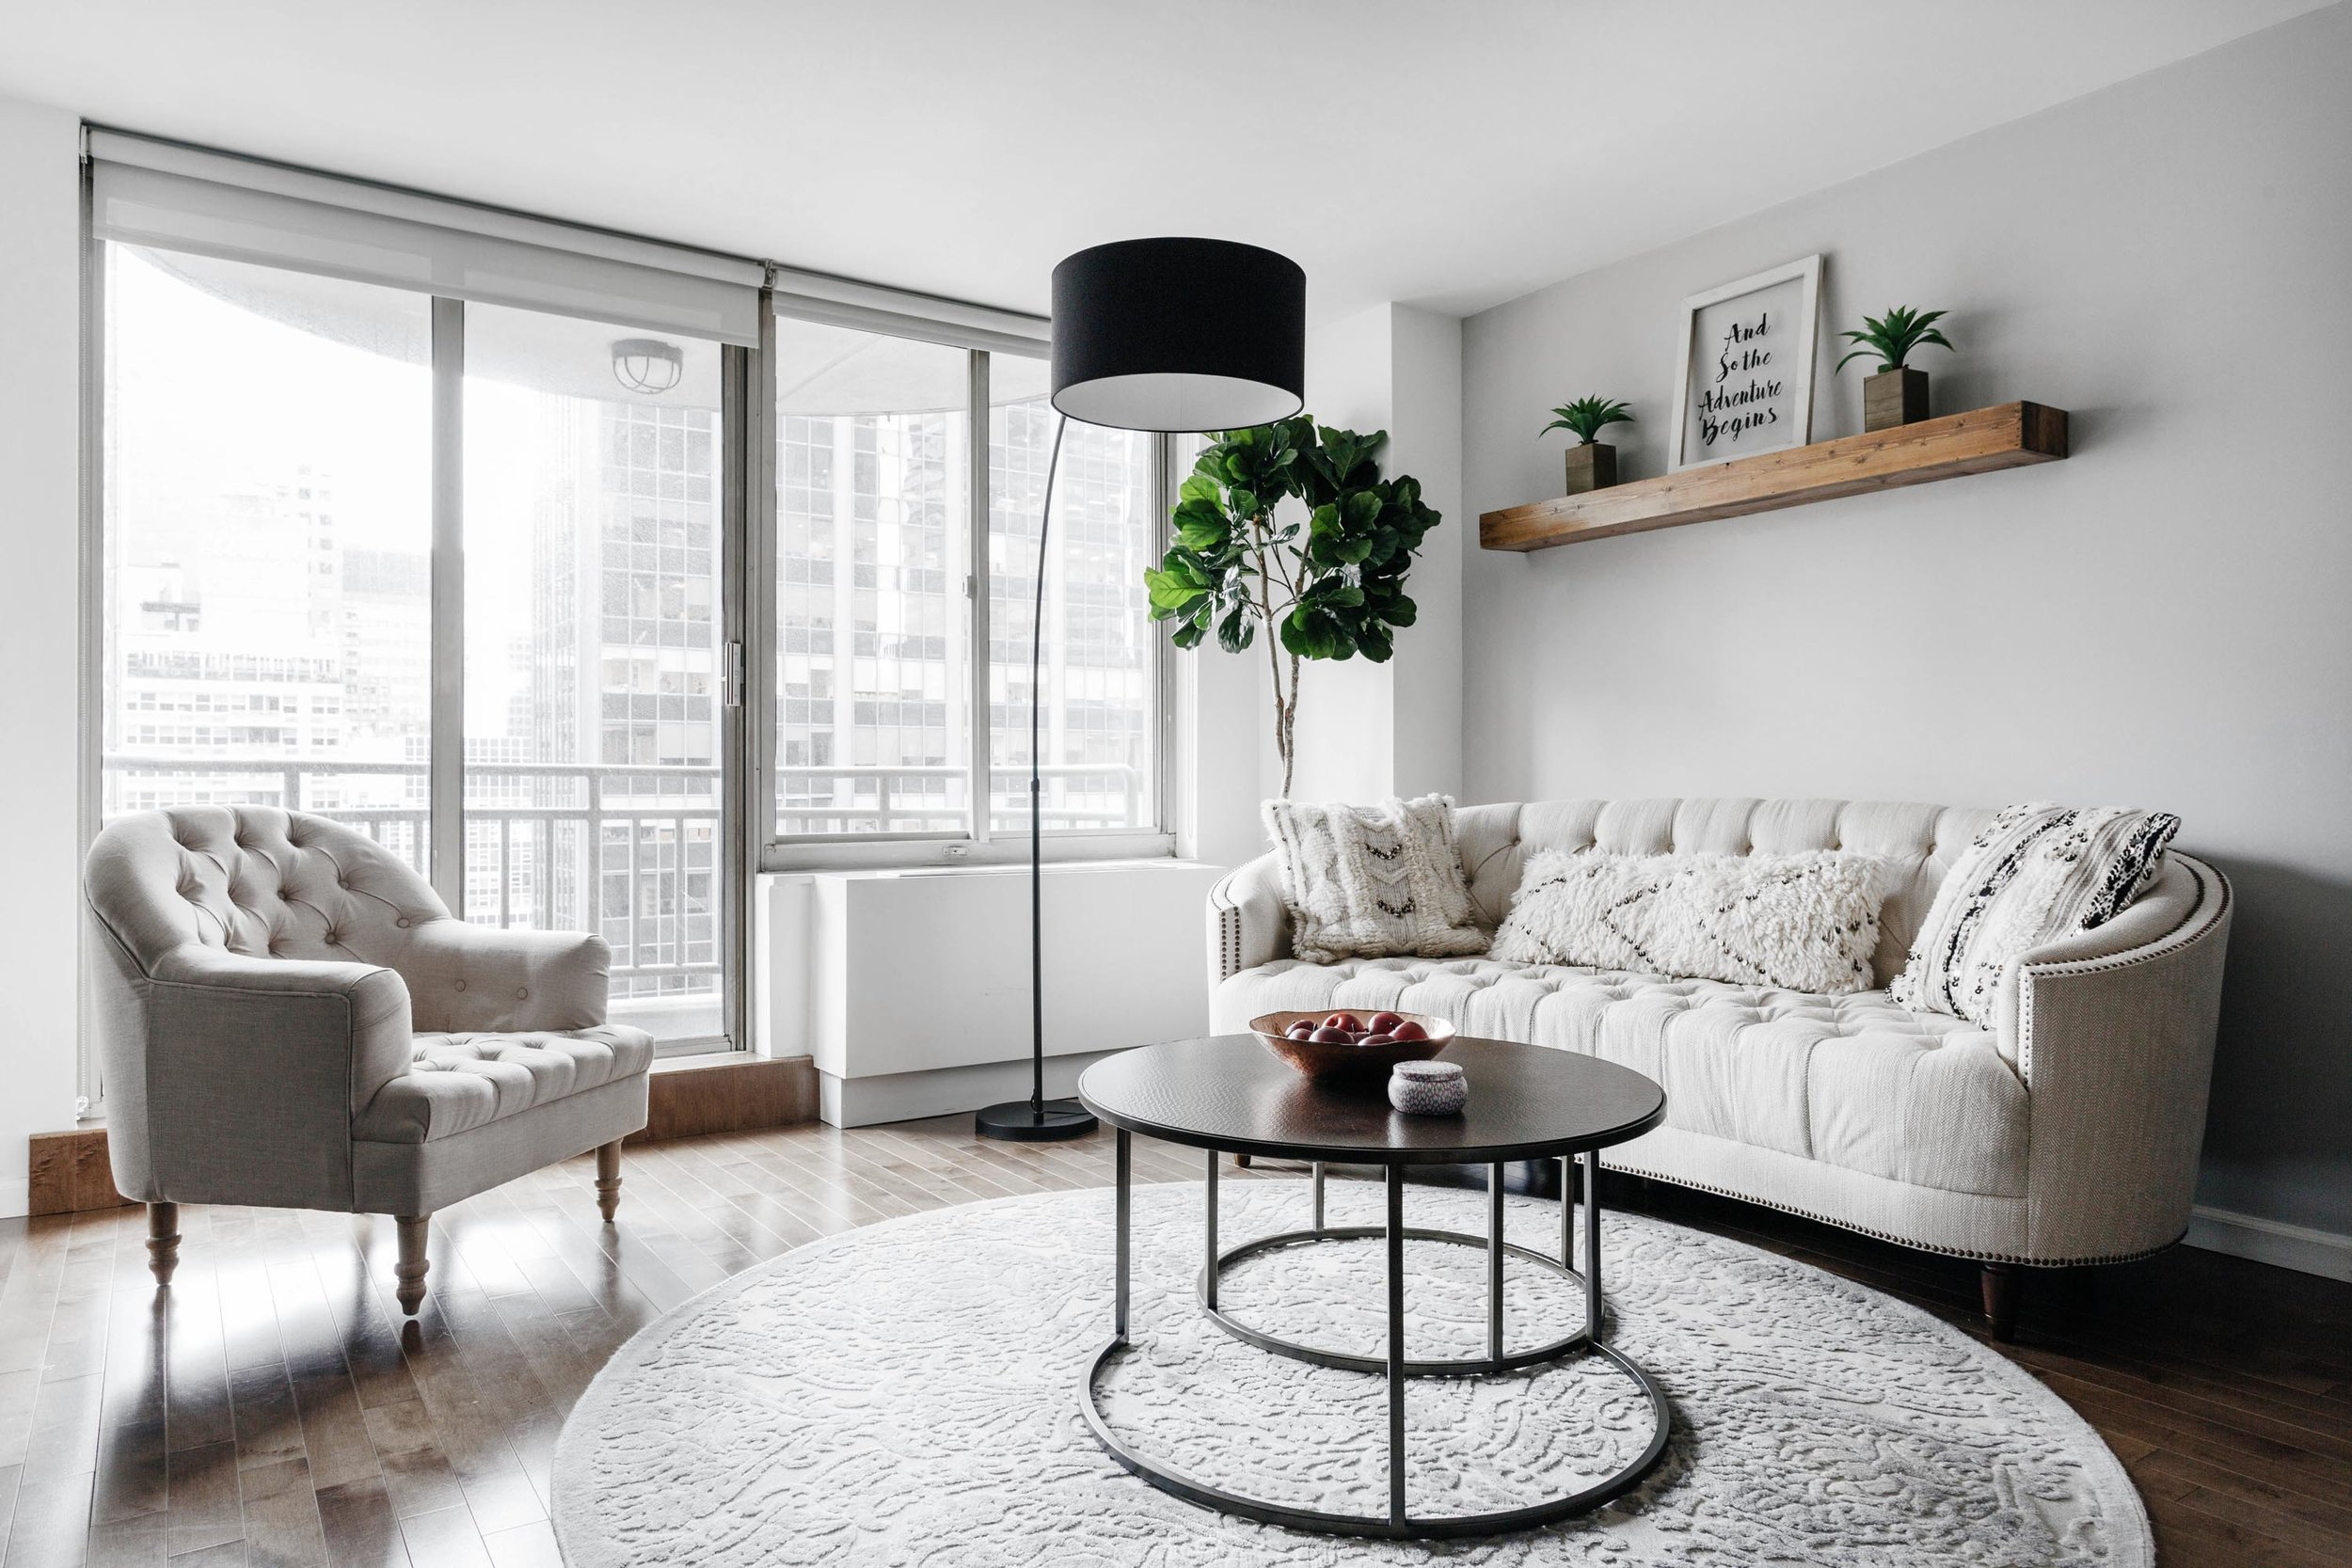 Bright living room with soft white sofas and wooden shelf on wall